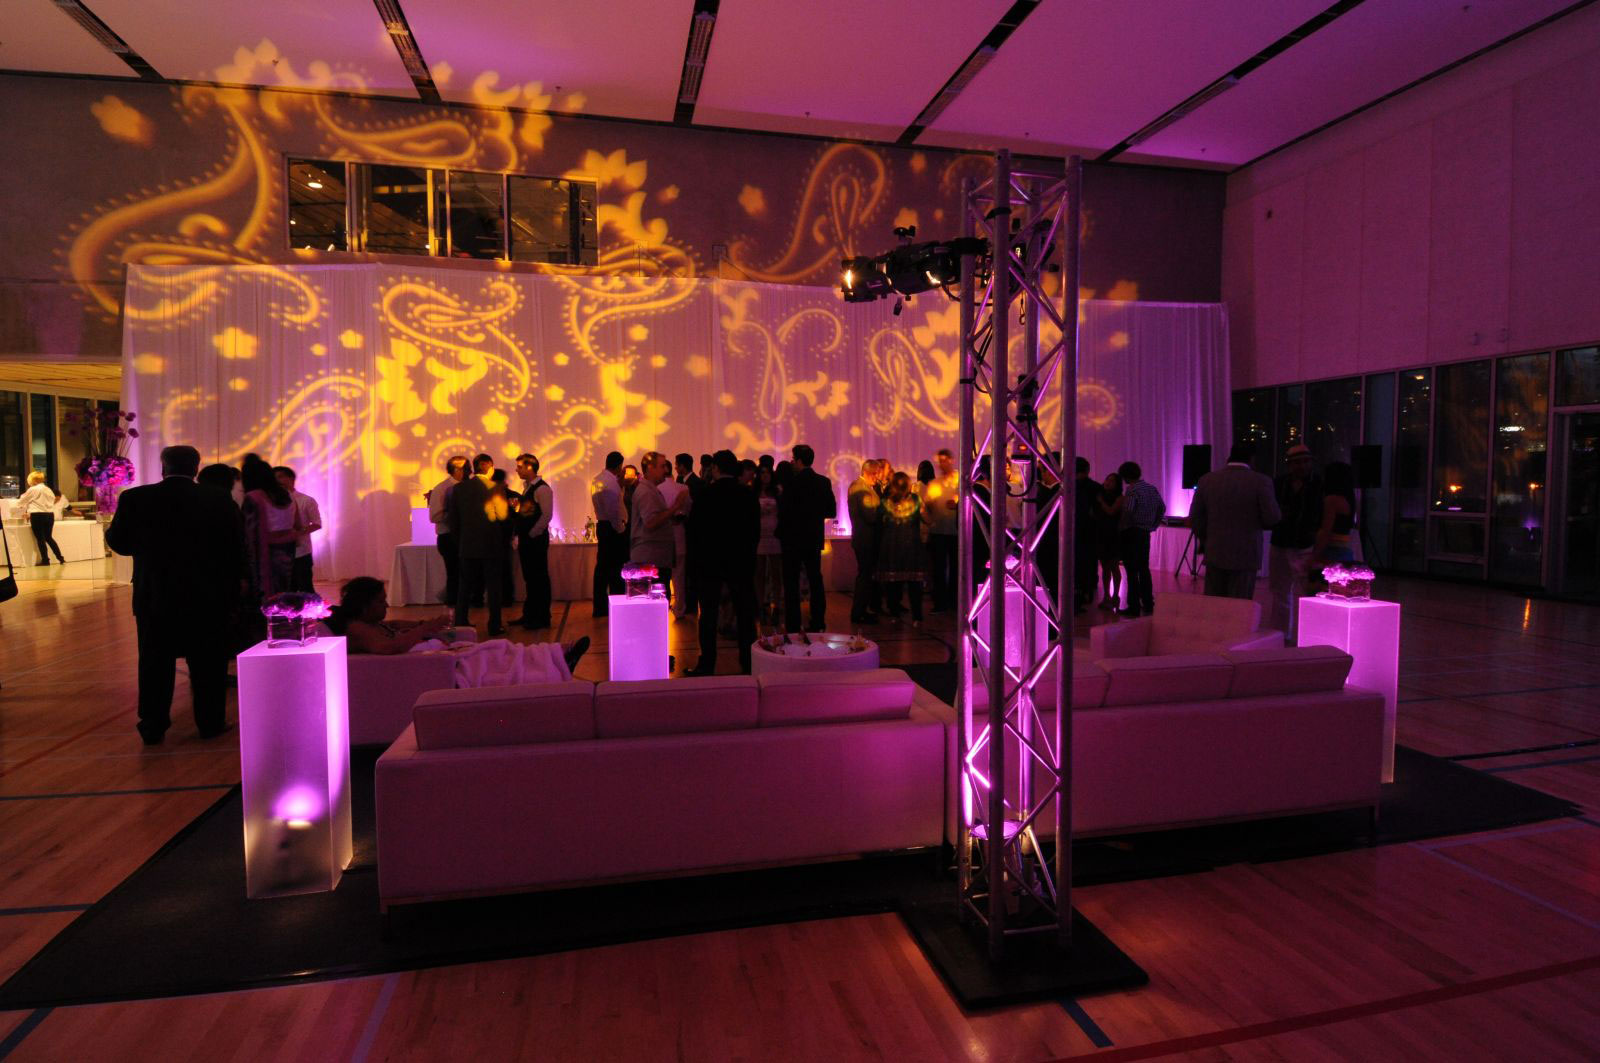 Vancouver Olympic Village Corporate Event - weddingn decor - custom lighting - paisley lighting - gobo - lounge furniture - draping